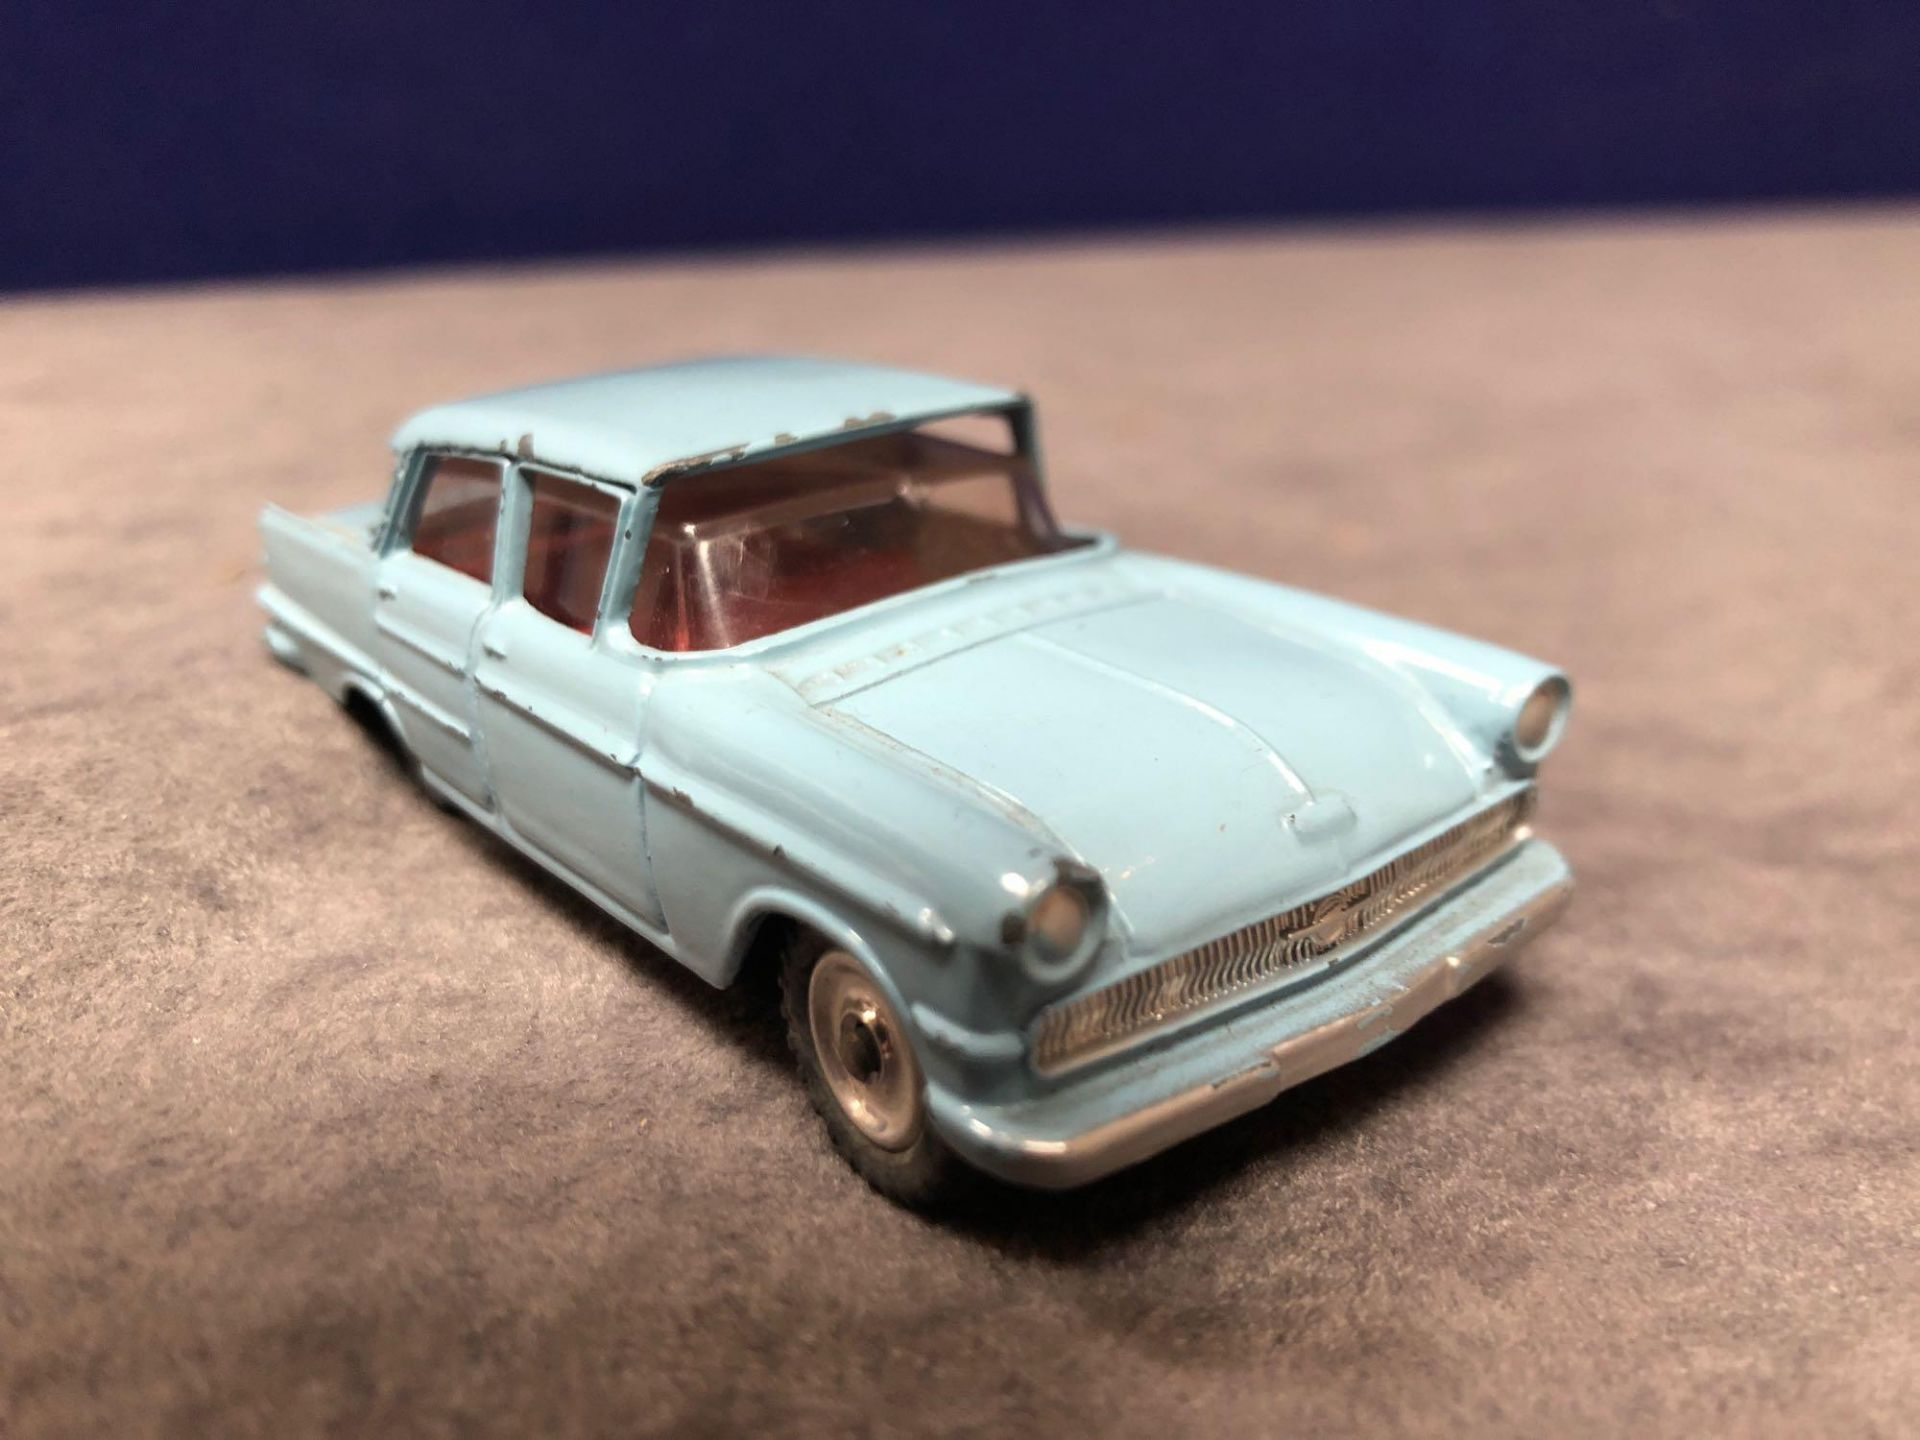 Dinky # 177 Opel Kapitan Blue - Red Interior 1960 - 1966 Unboxed Very Good Model With A Good Shine - Image 2 of 4